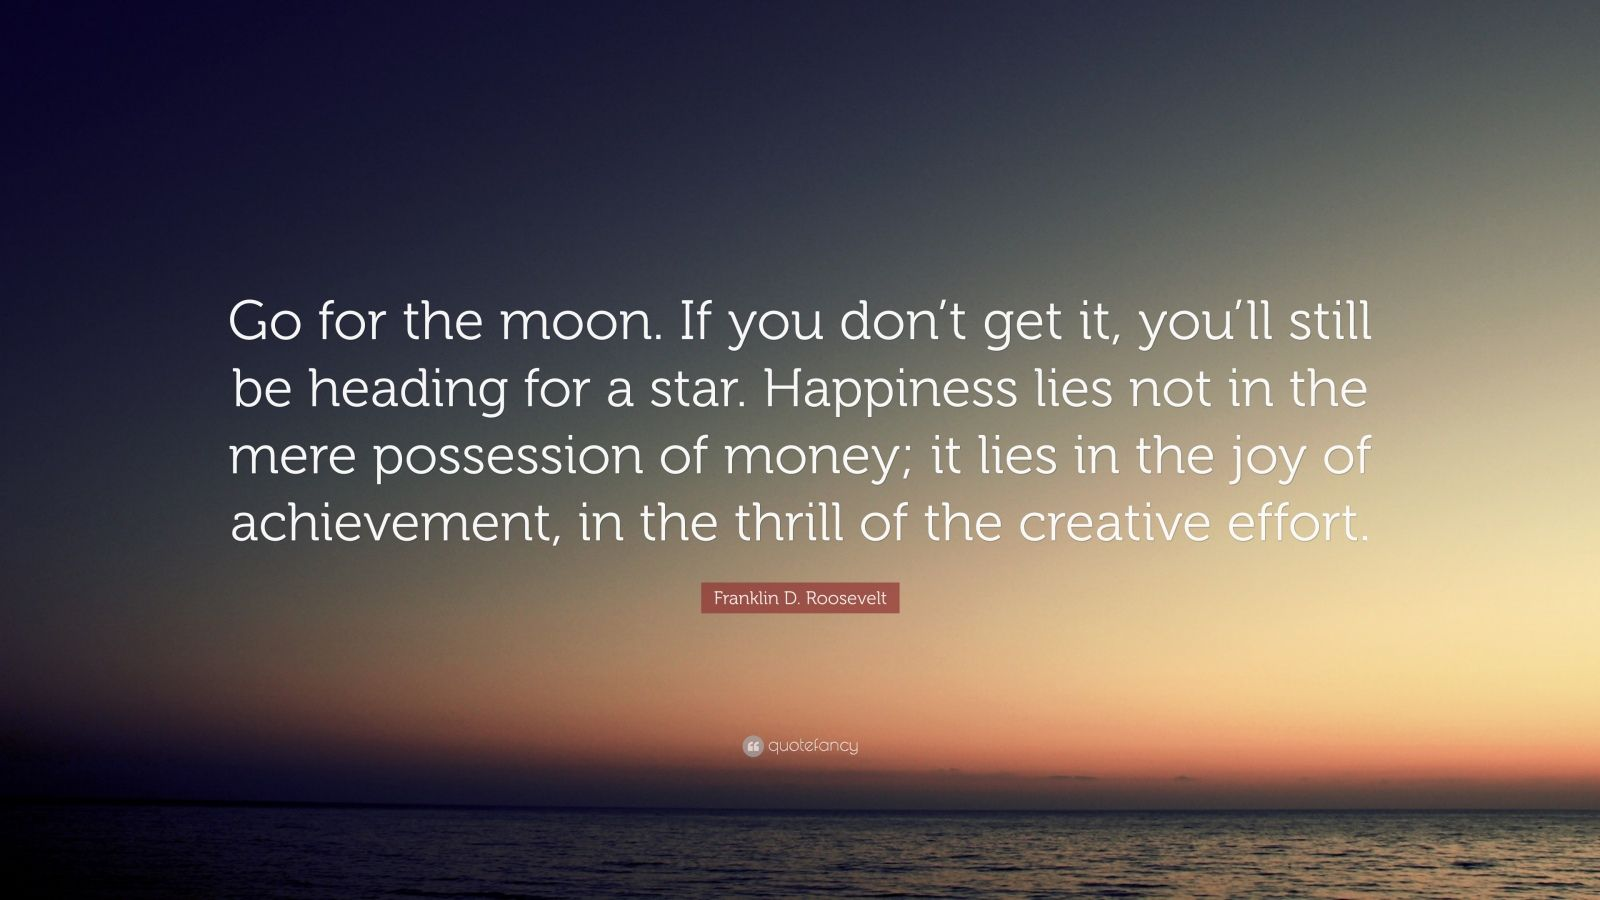 """Franklin D. Roosevelt Quote: """"Go for the moon. If you don't get it, you'll still be heading for a star. Happiness lies not in the mere possession of money; it lies in the joy of achievement, in the thrill of the creative effort."""""""